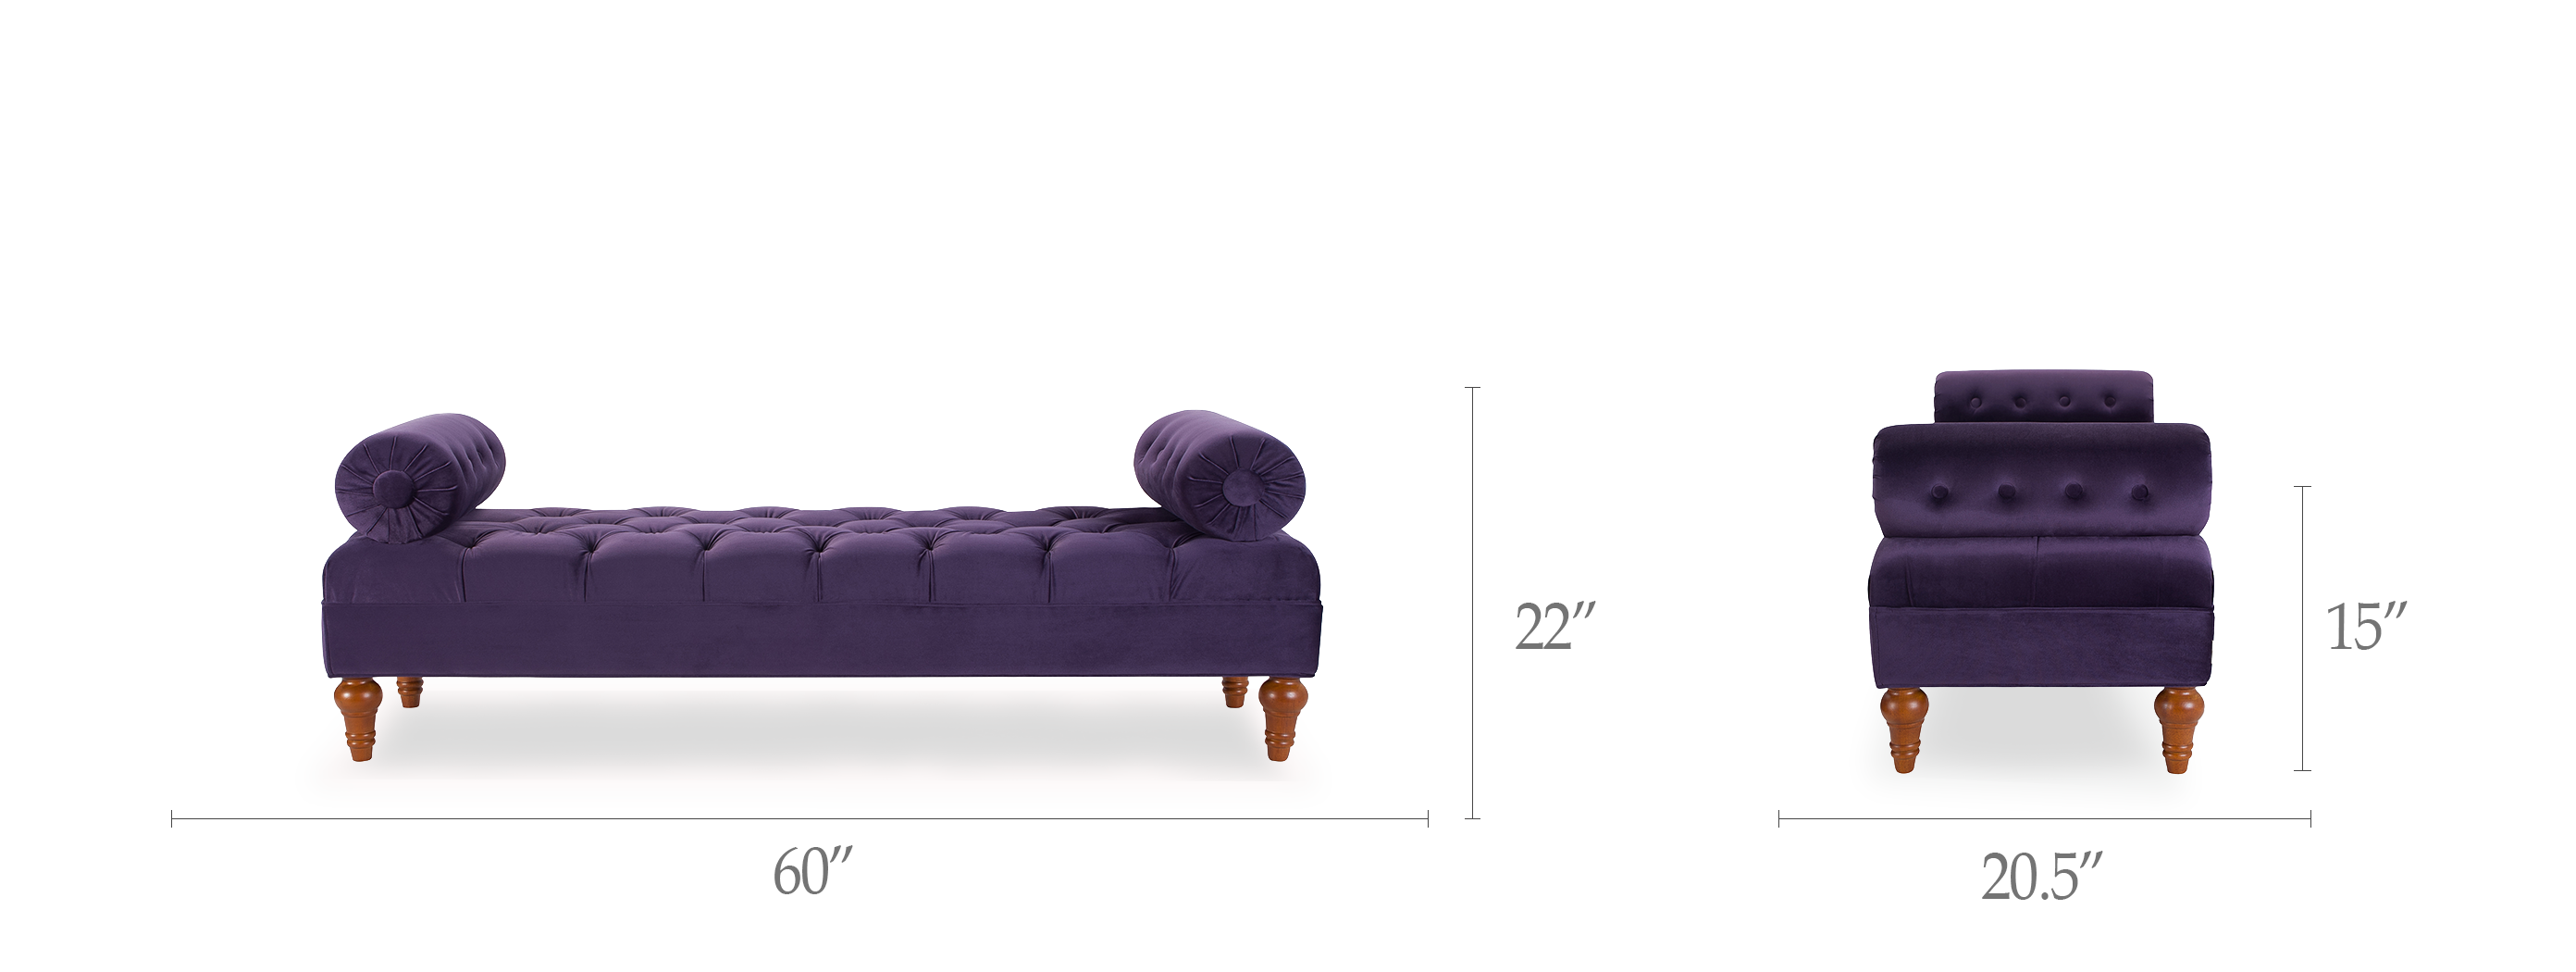 medium full with ottoman outstanding shoe bench color storage of leather arms size large upholstered purple